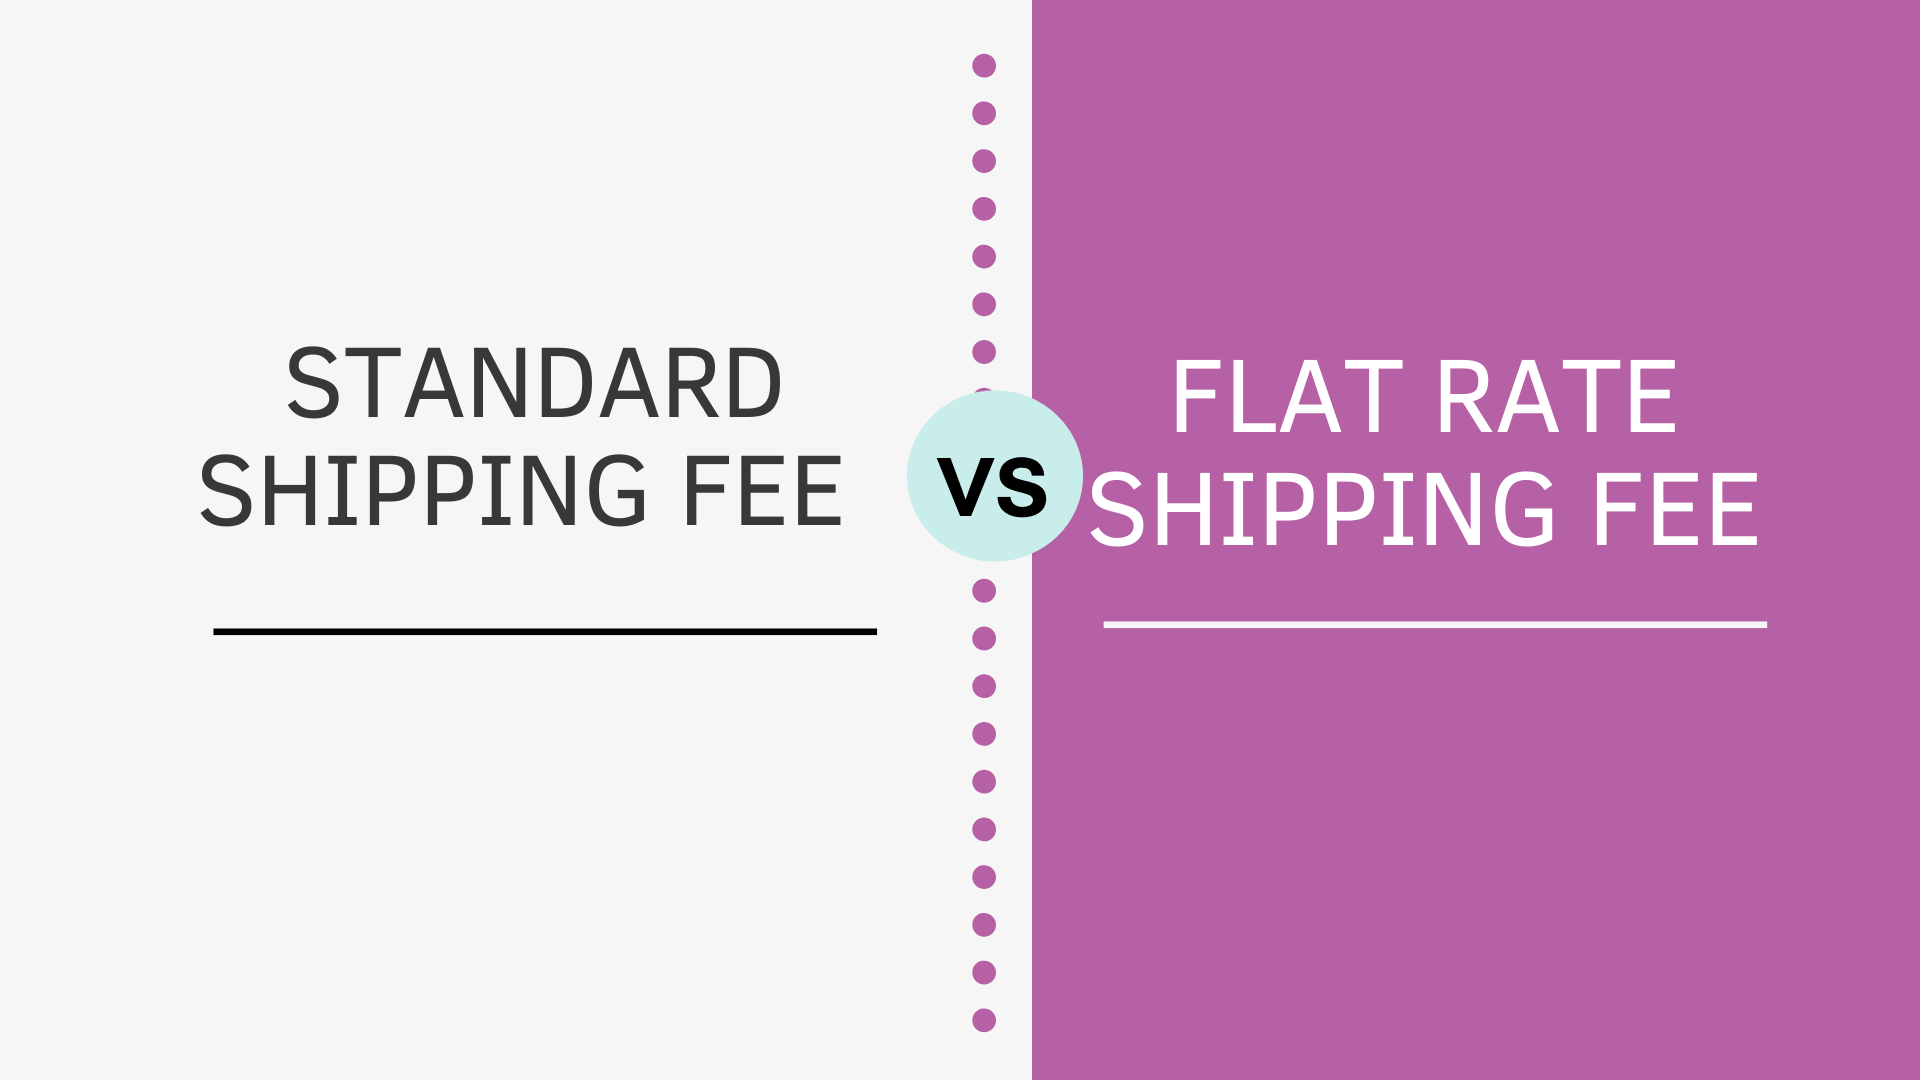 Standard Vs Flat Rate Shipping Fee in WooCommerce